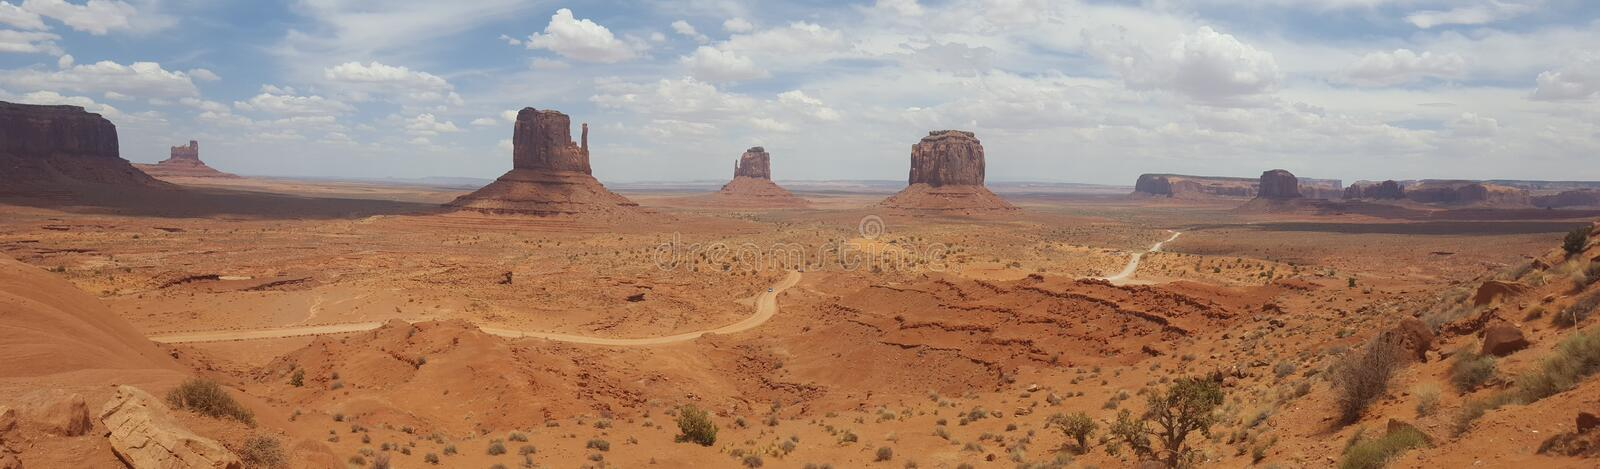 Plain Panorama United States Monument Valley Arizona photographie stock